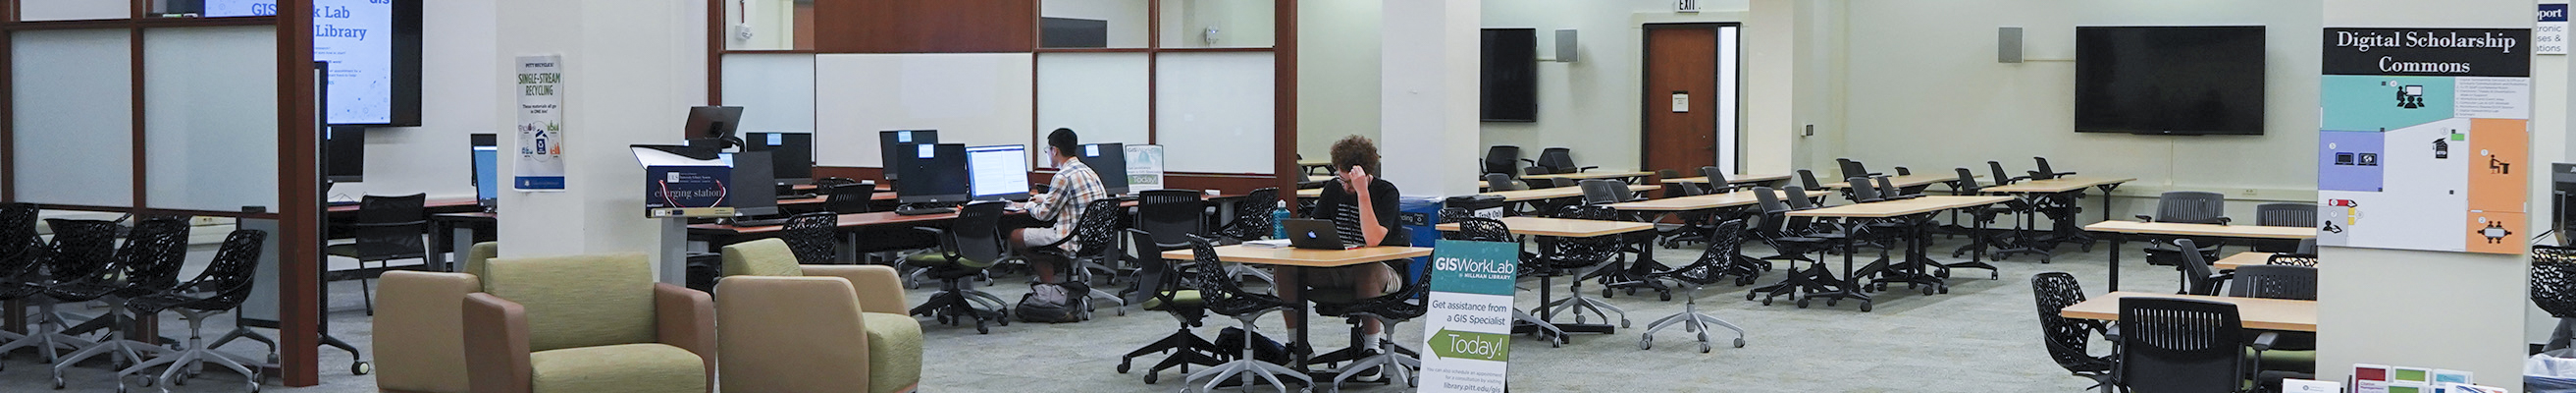 Digital Scholarship Commons Space